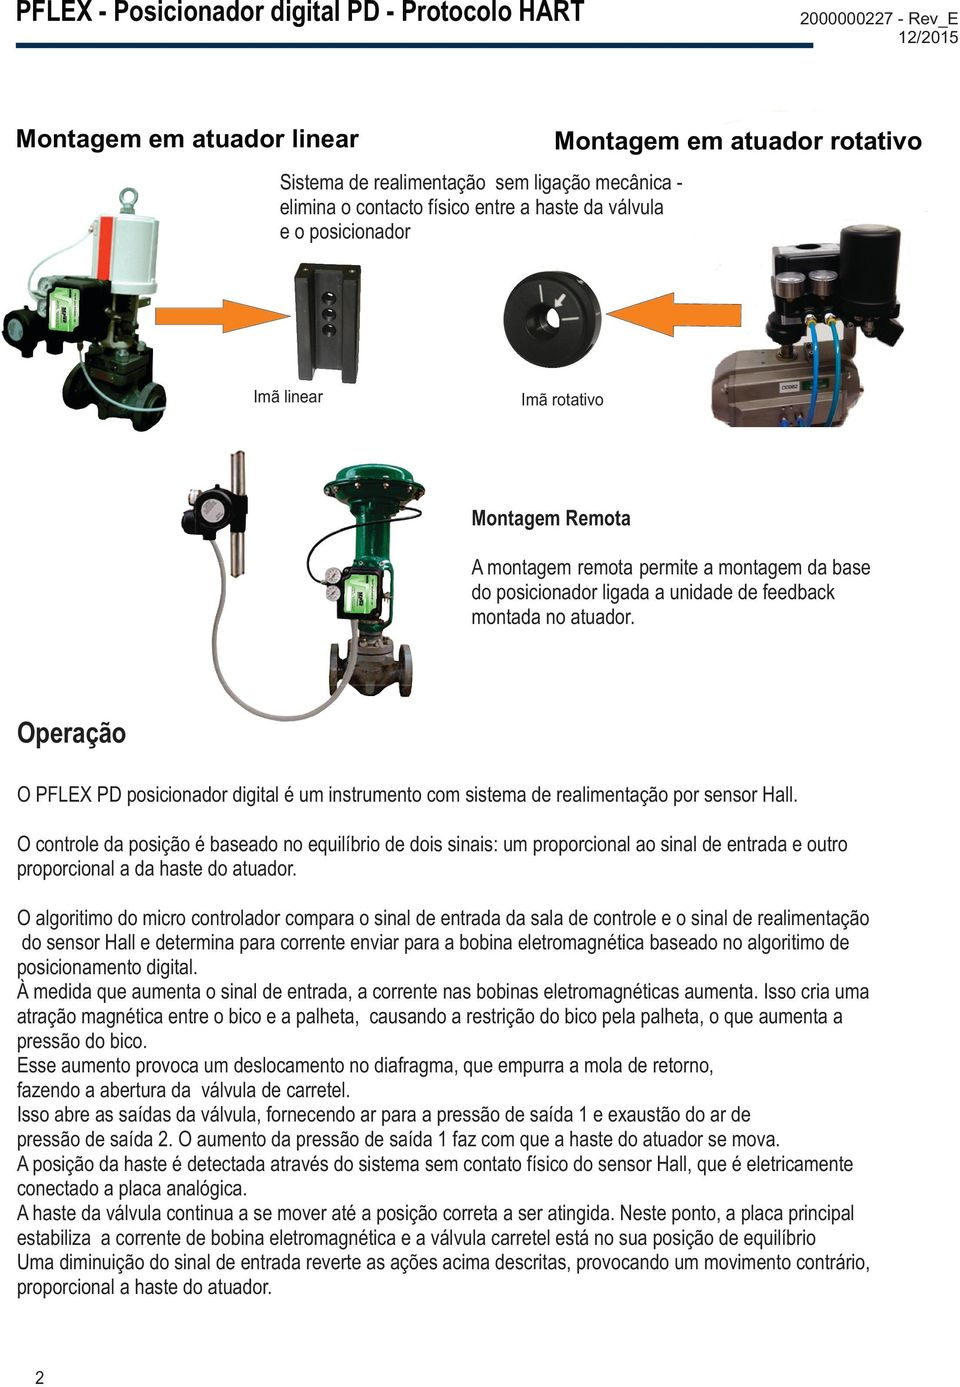 Montagem Remota Ambient temperature: -40 to +85ºC Supply pressure: 40 to 150 psi Sensors & Instruments Input: 4-20mA (20mA / 550 ohms) Digital Valve Positioner - PD A montagem remota permite a